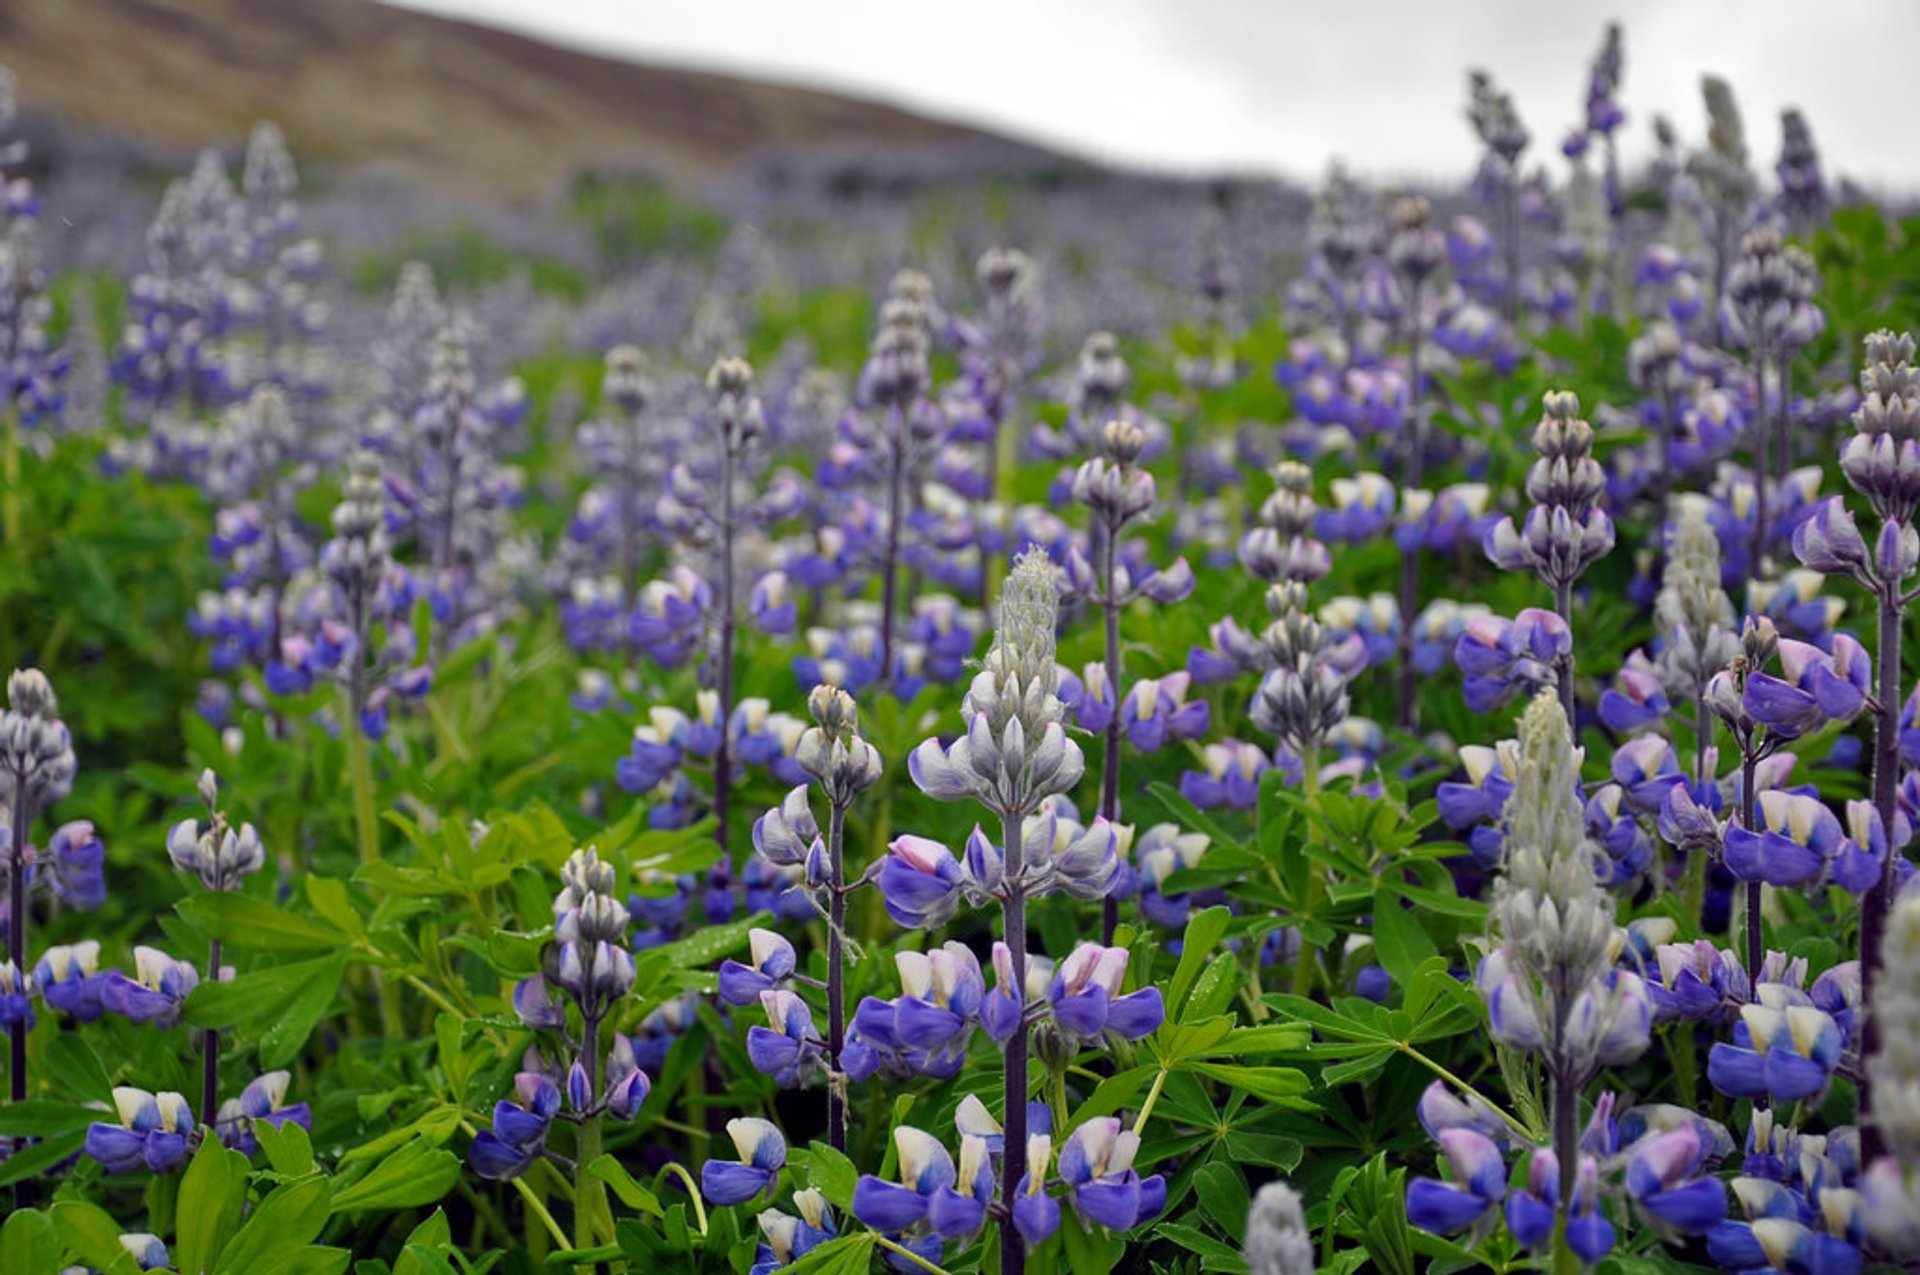 Lupin Blooming in Iceland - Best Season 2020